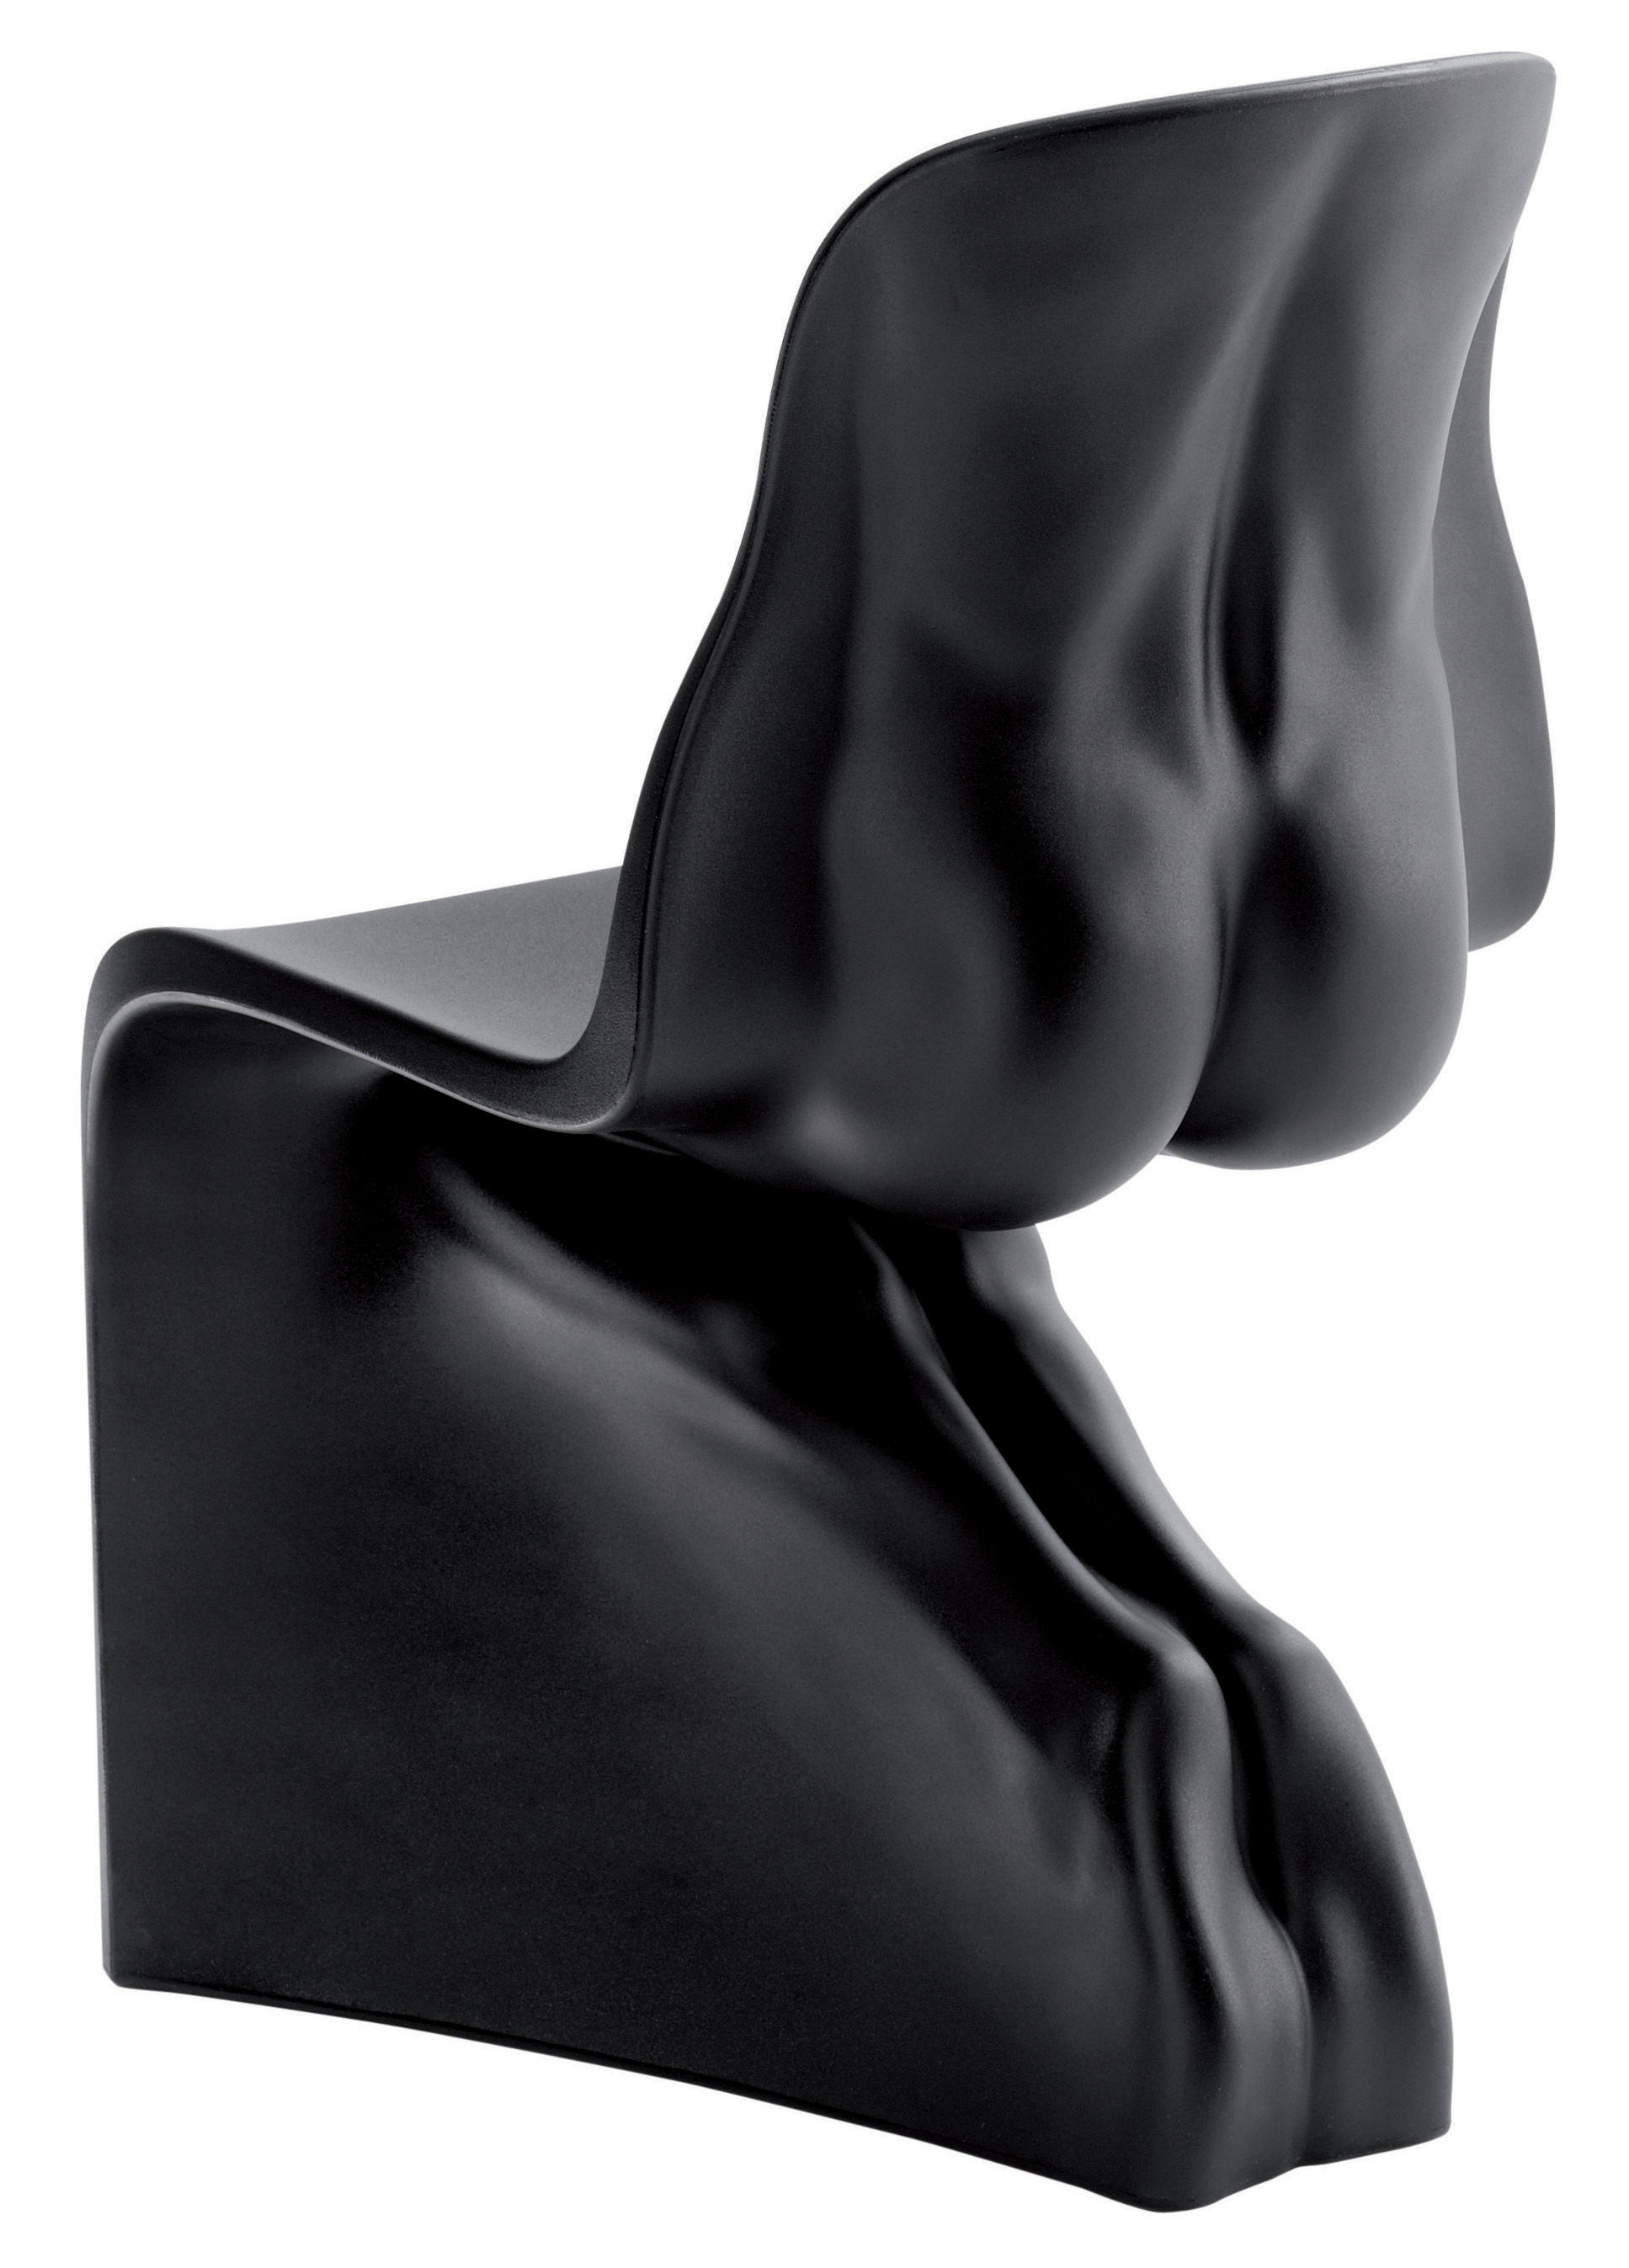 Furniture - Chairs - Him Chair - Plastic by Casamania - Black - Polythene